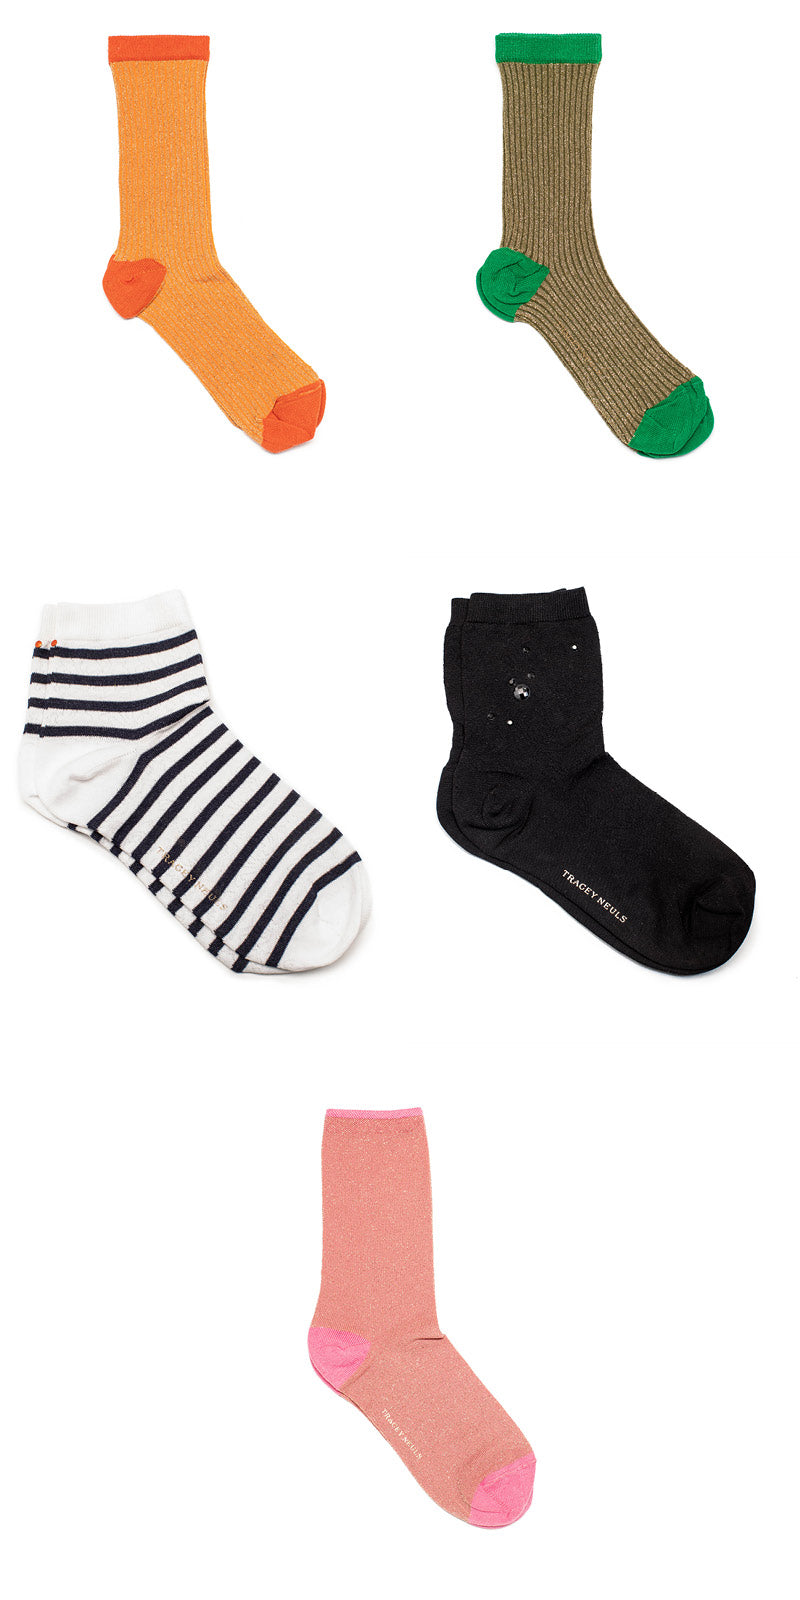 colourful socks by designer Tracey Neuls